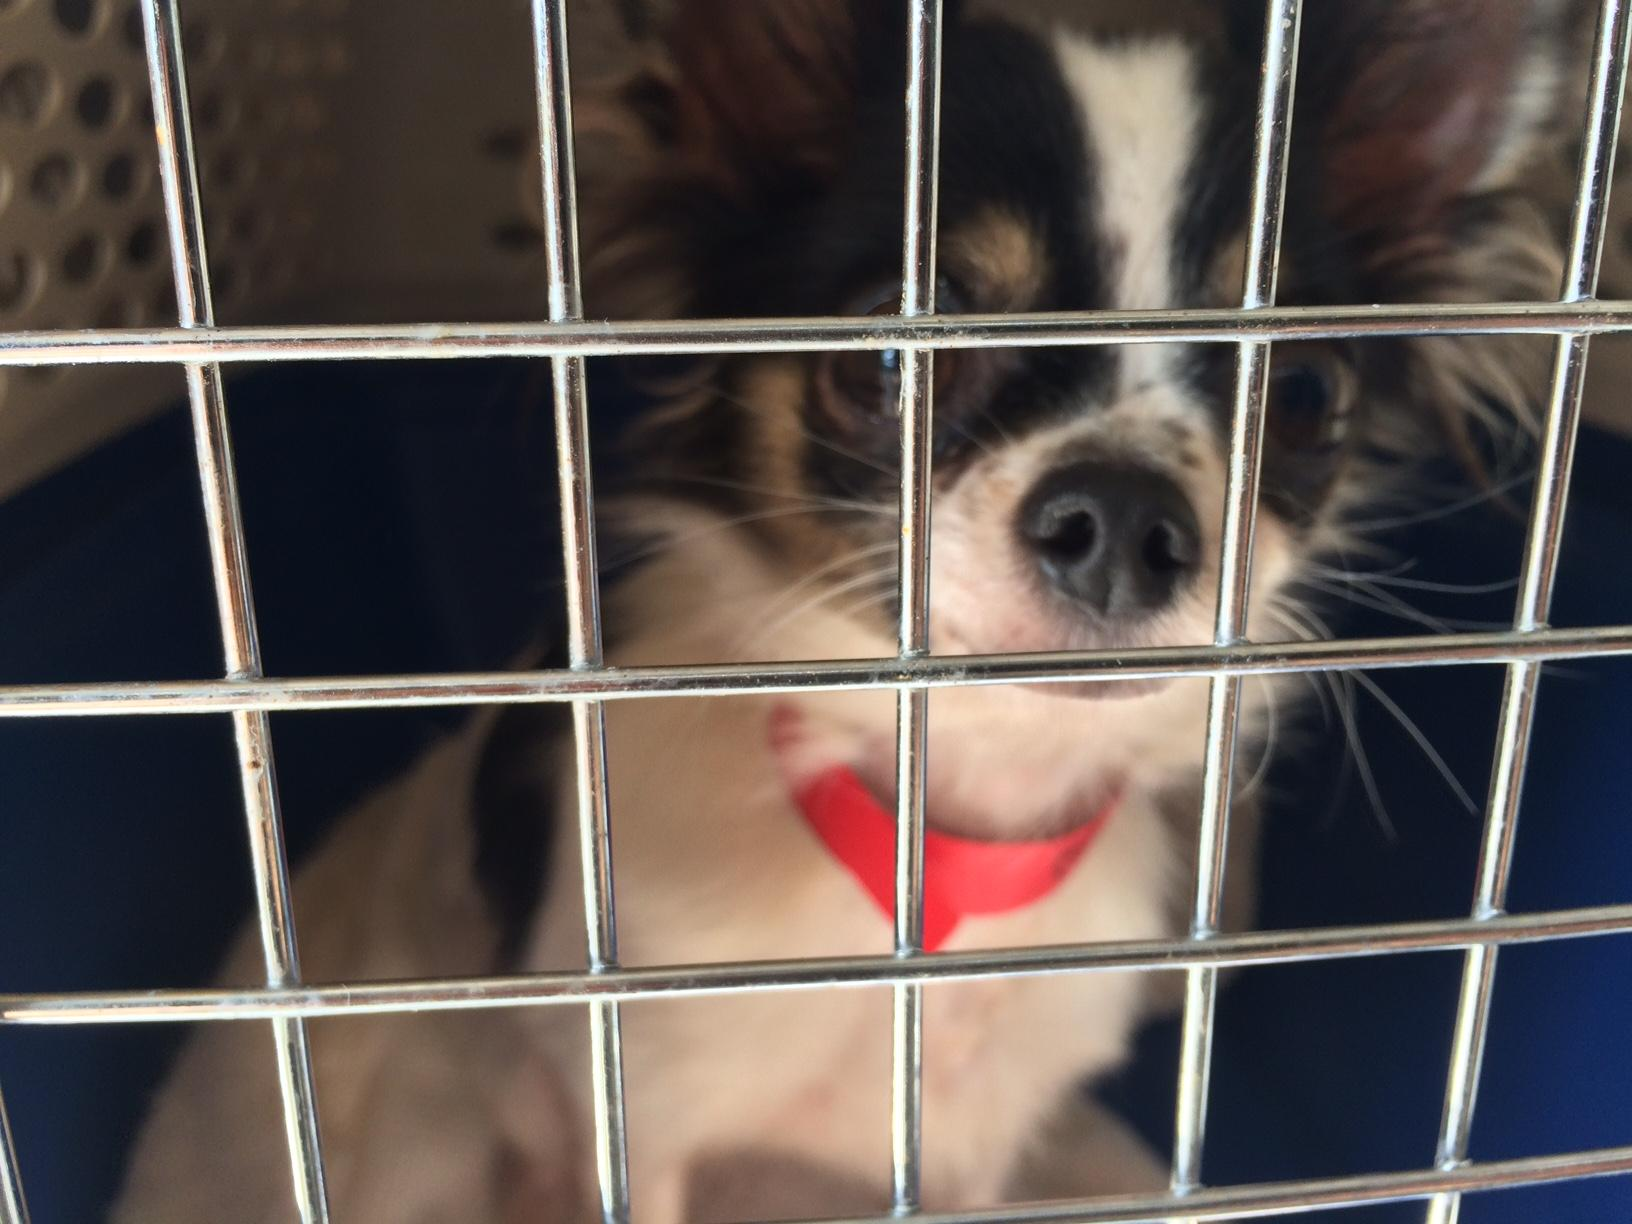 Veterinarians are working to assess the needs of 98 small dogs surrendered to Greenhill Humane Society in what Lane County officials called the worst case of animal hoarding in a quarter century. (SBG)